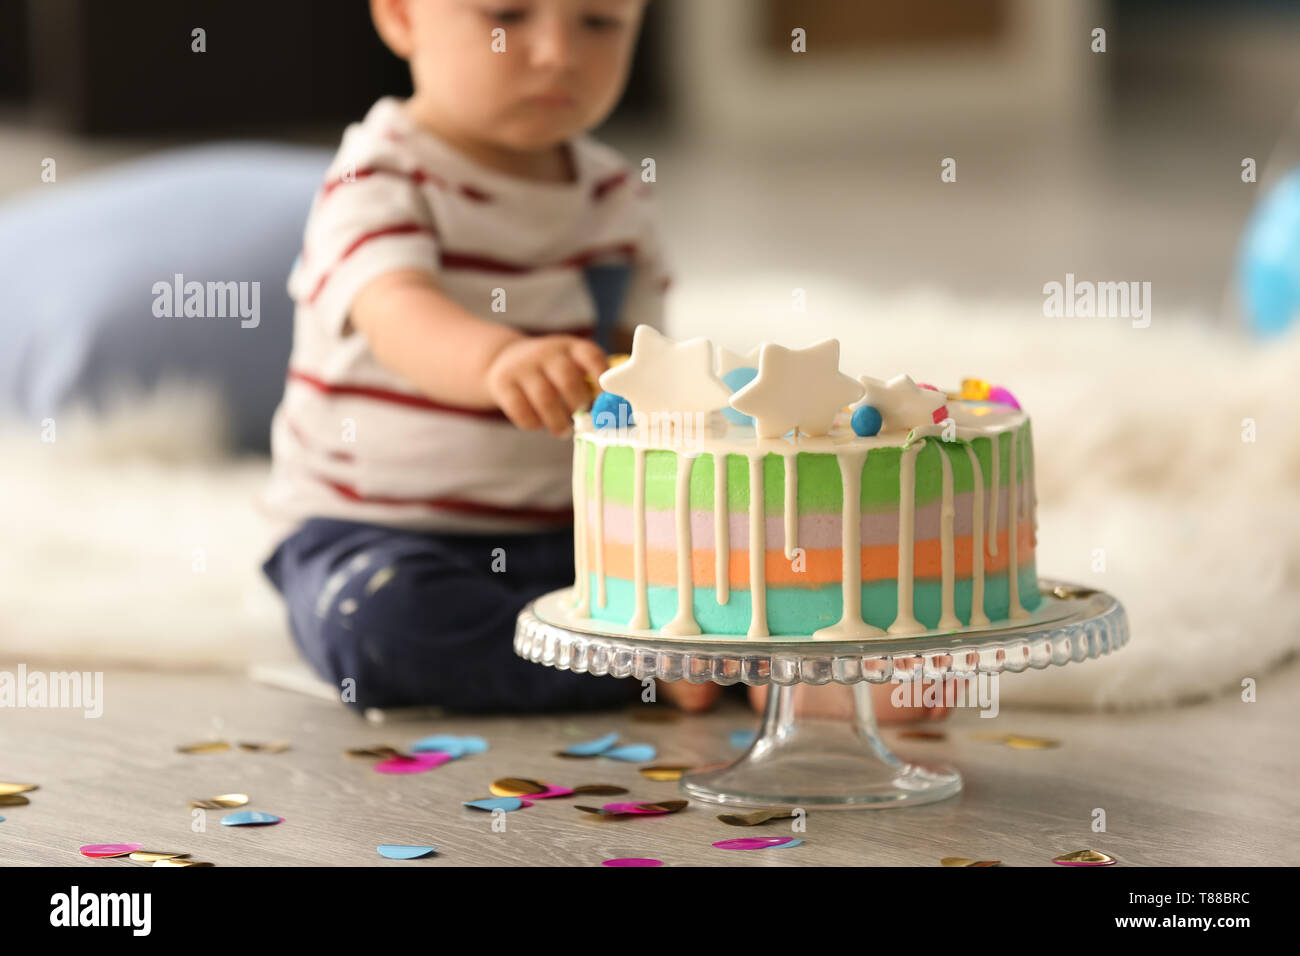 Magnificent Cute Little Boy With Birthday Cake Sitting On Floor In Room Stock Funny Birthday Cards Online Inifofree Goldxyz